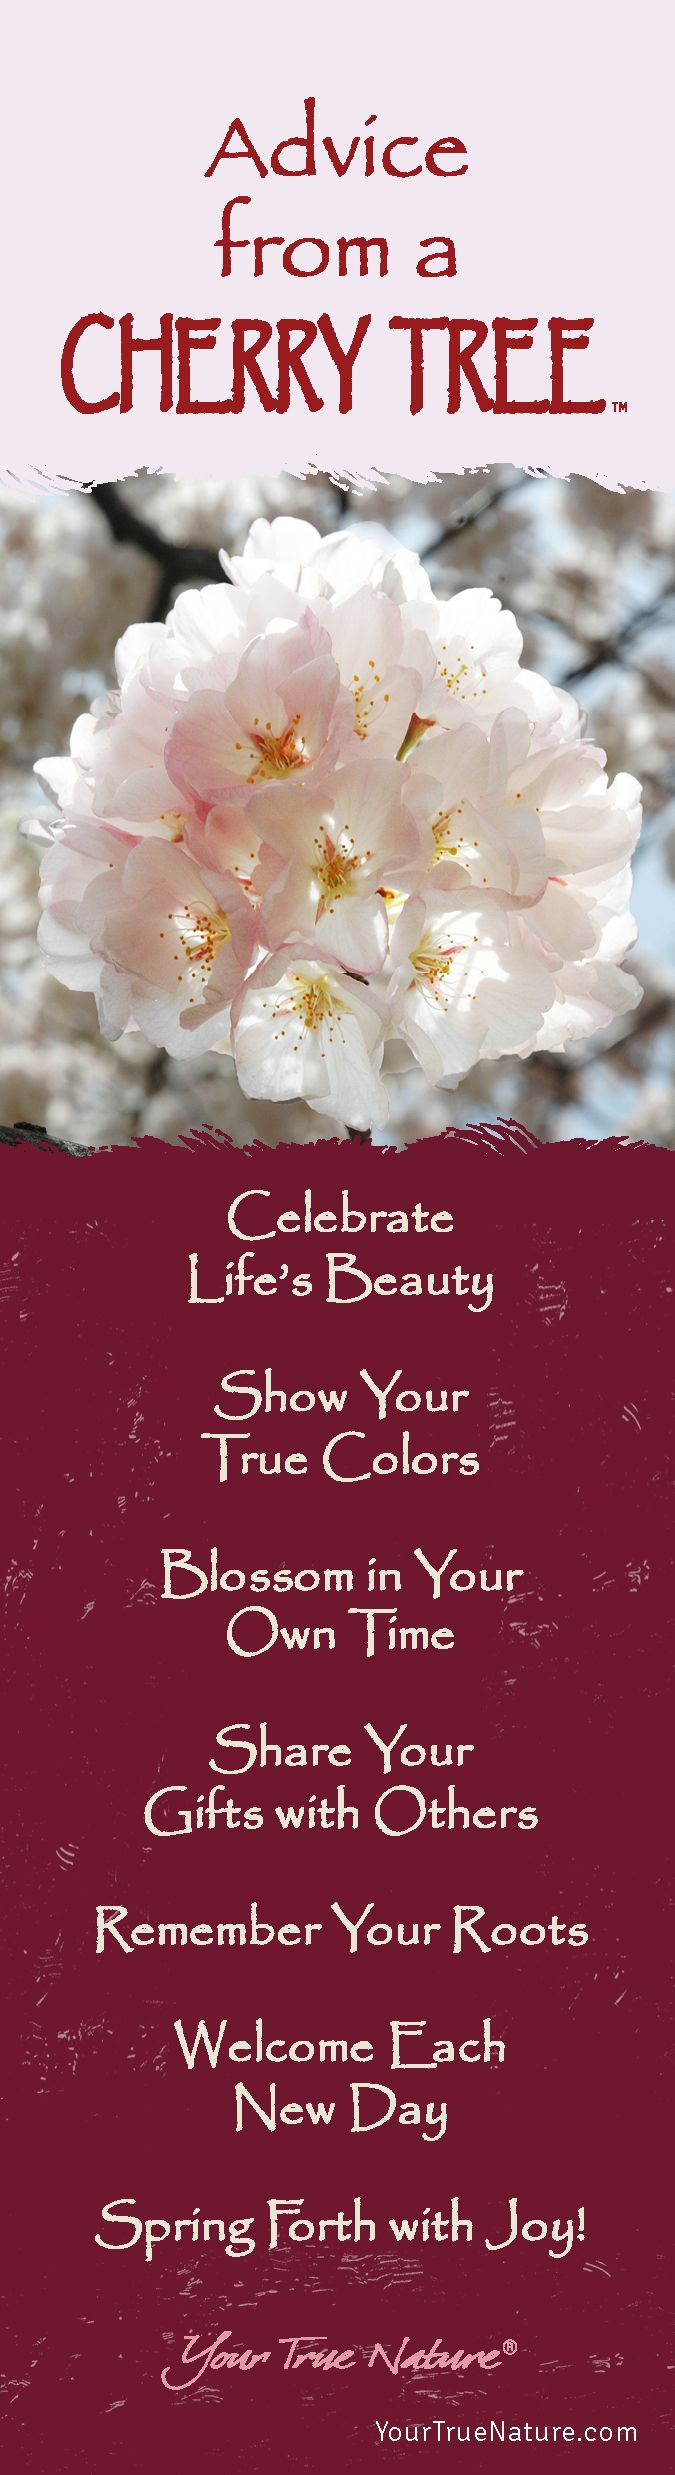 Mother Advice From A Cherry Tree Remember Your Roots Your True Nature Good Advice Advice Cherry Tree